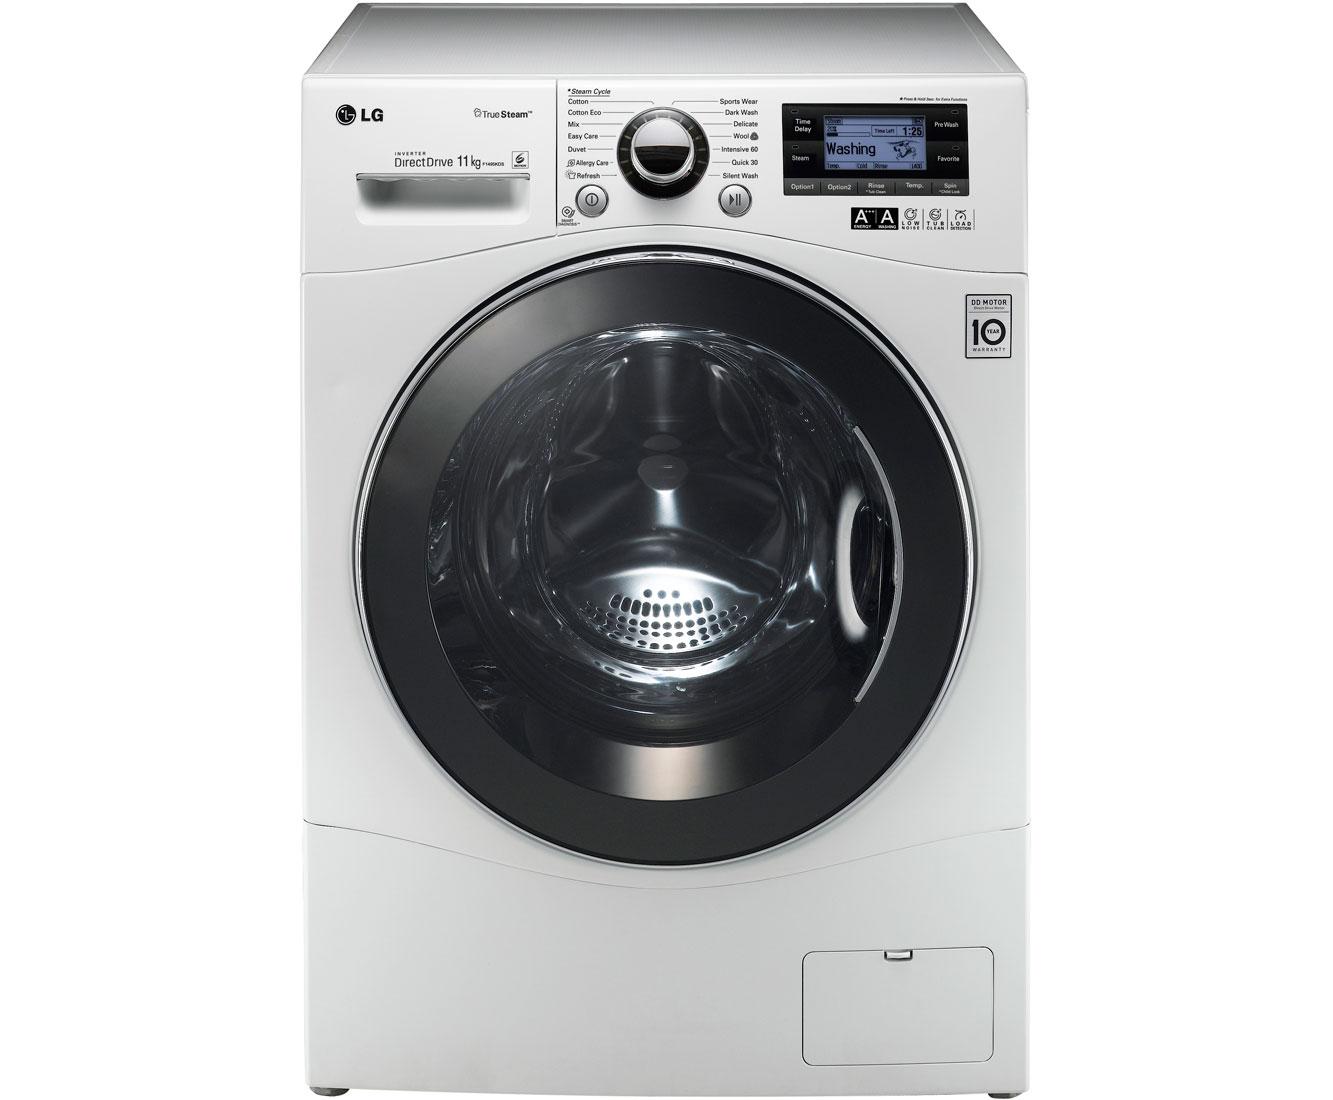 LG 11kg Steam Direct Drive F1495KDS 11Kg Washing Machine with 1400 rpm - White